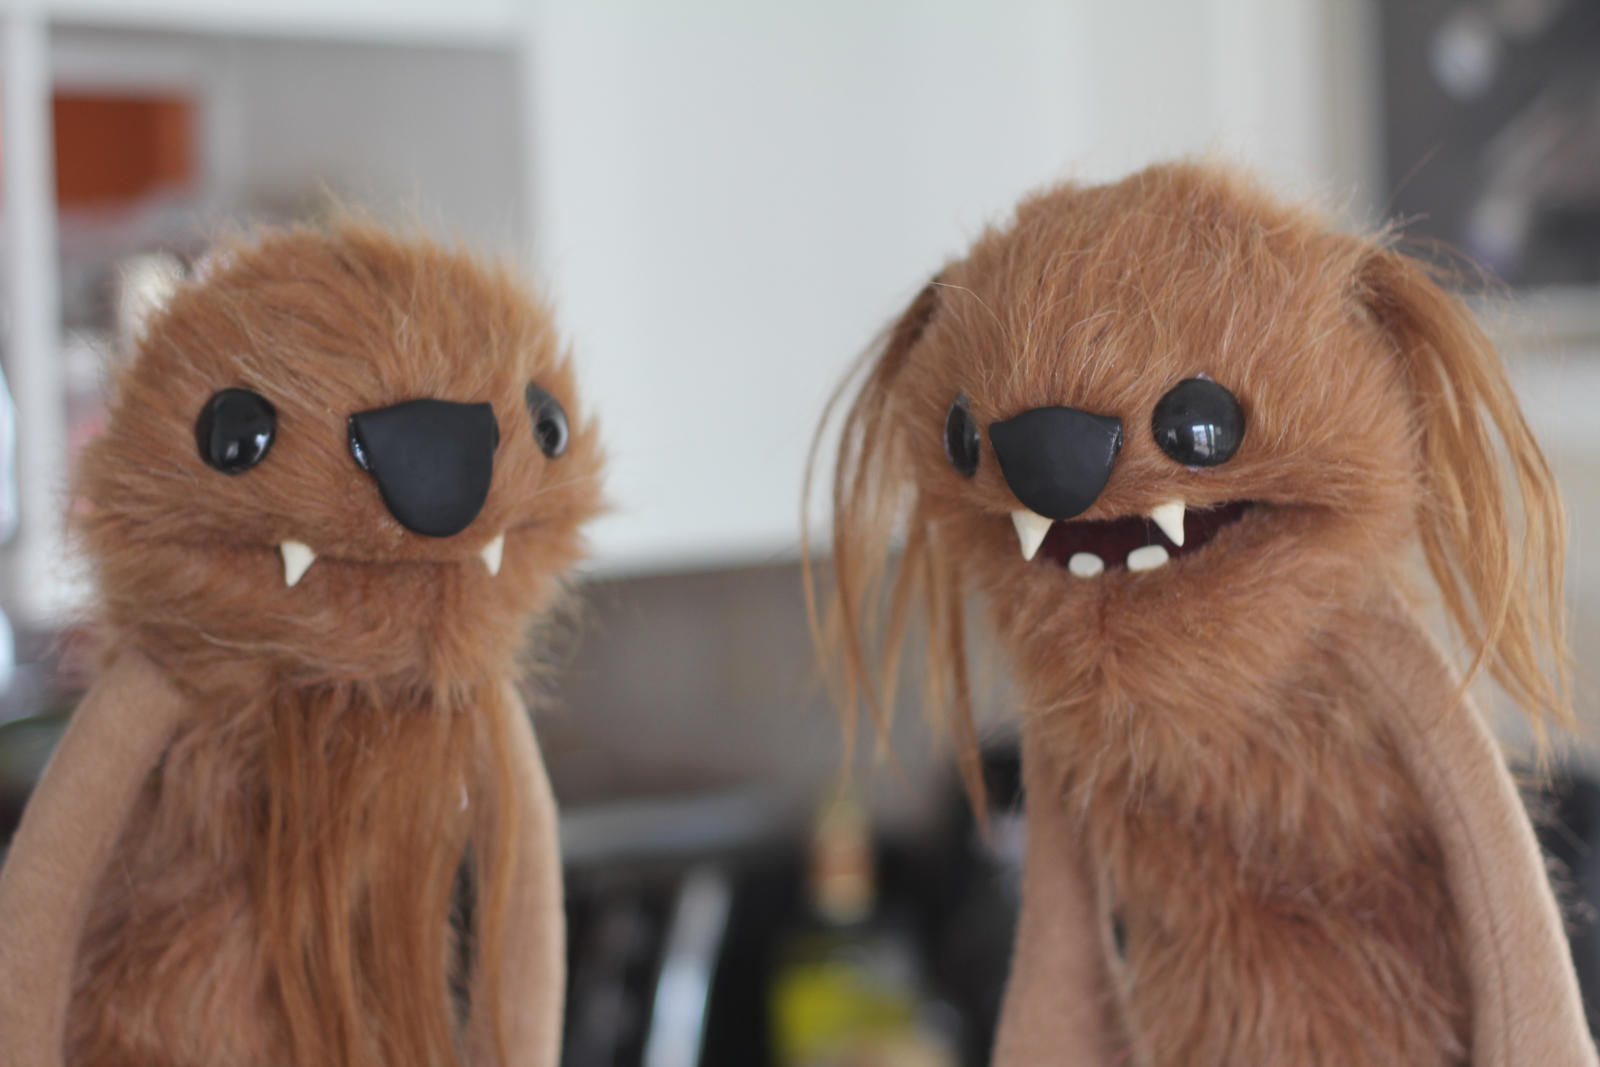 Beaver Monkey Rat Bears Puppets by tommyfilth